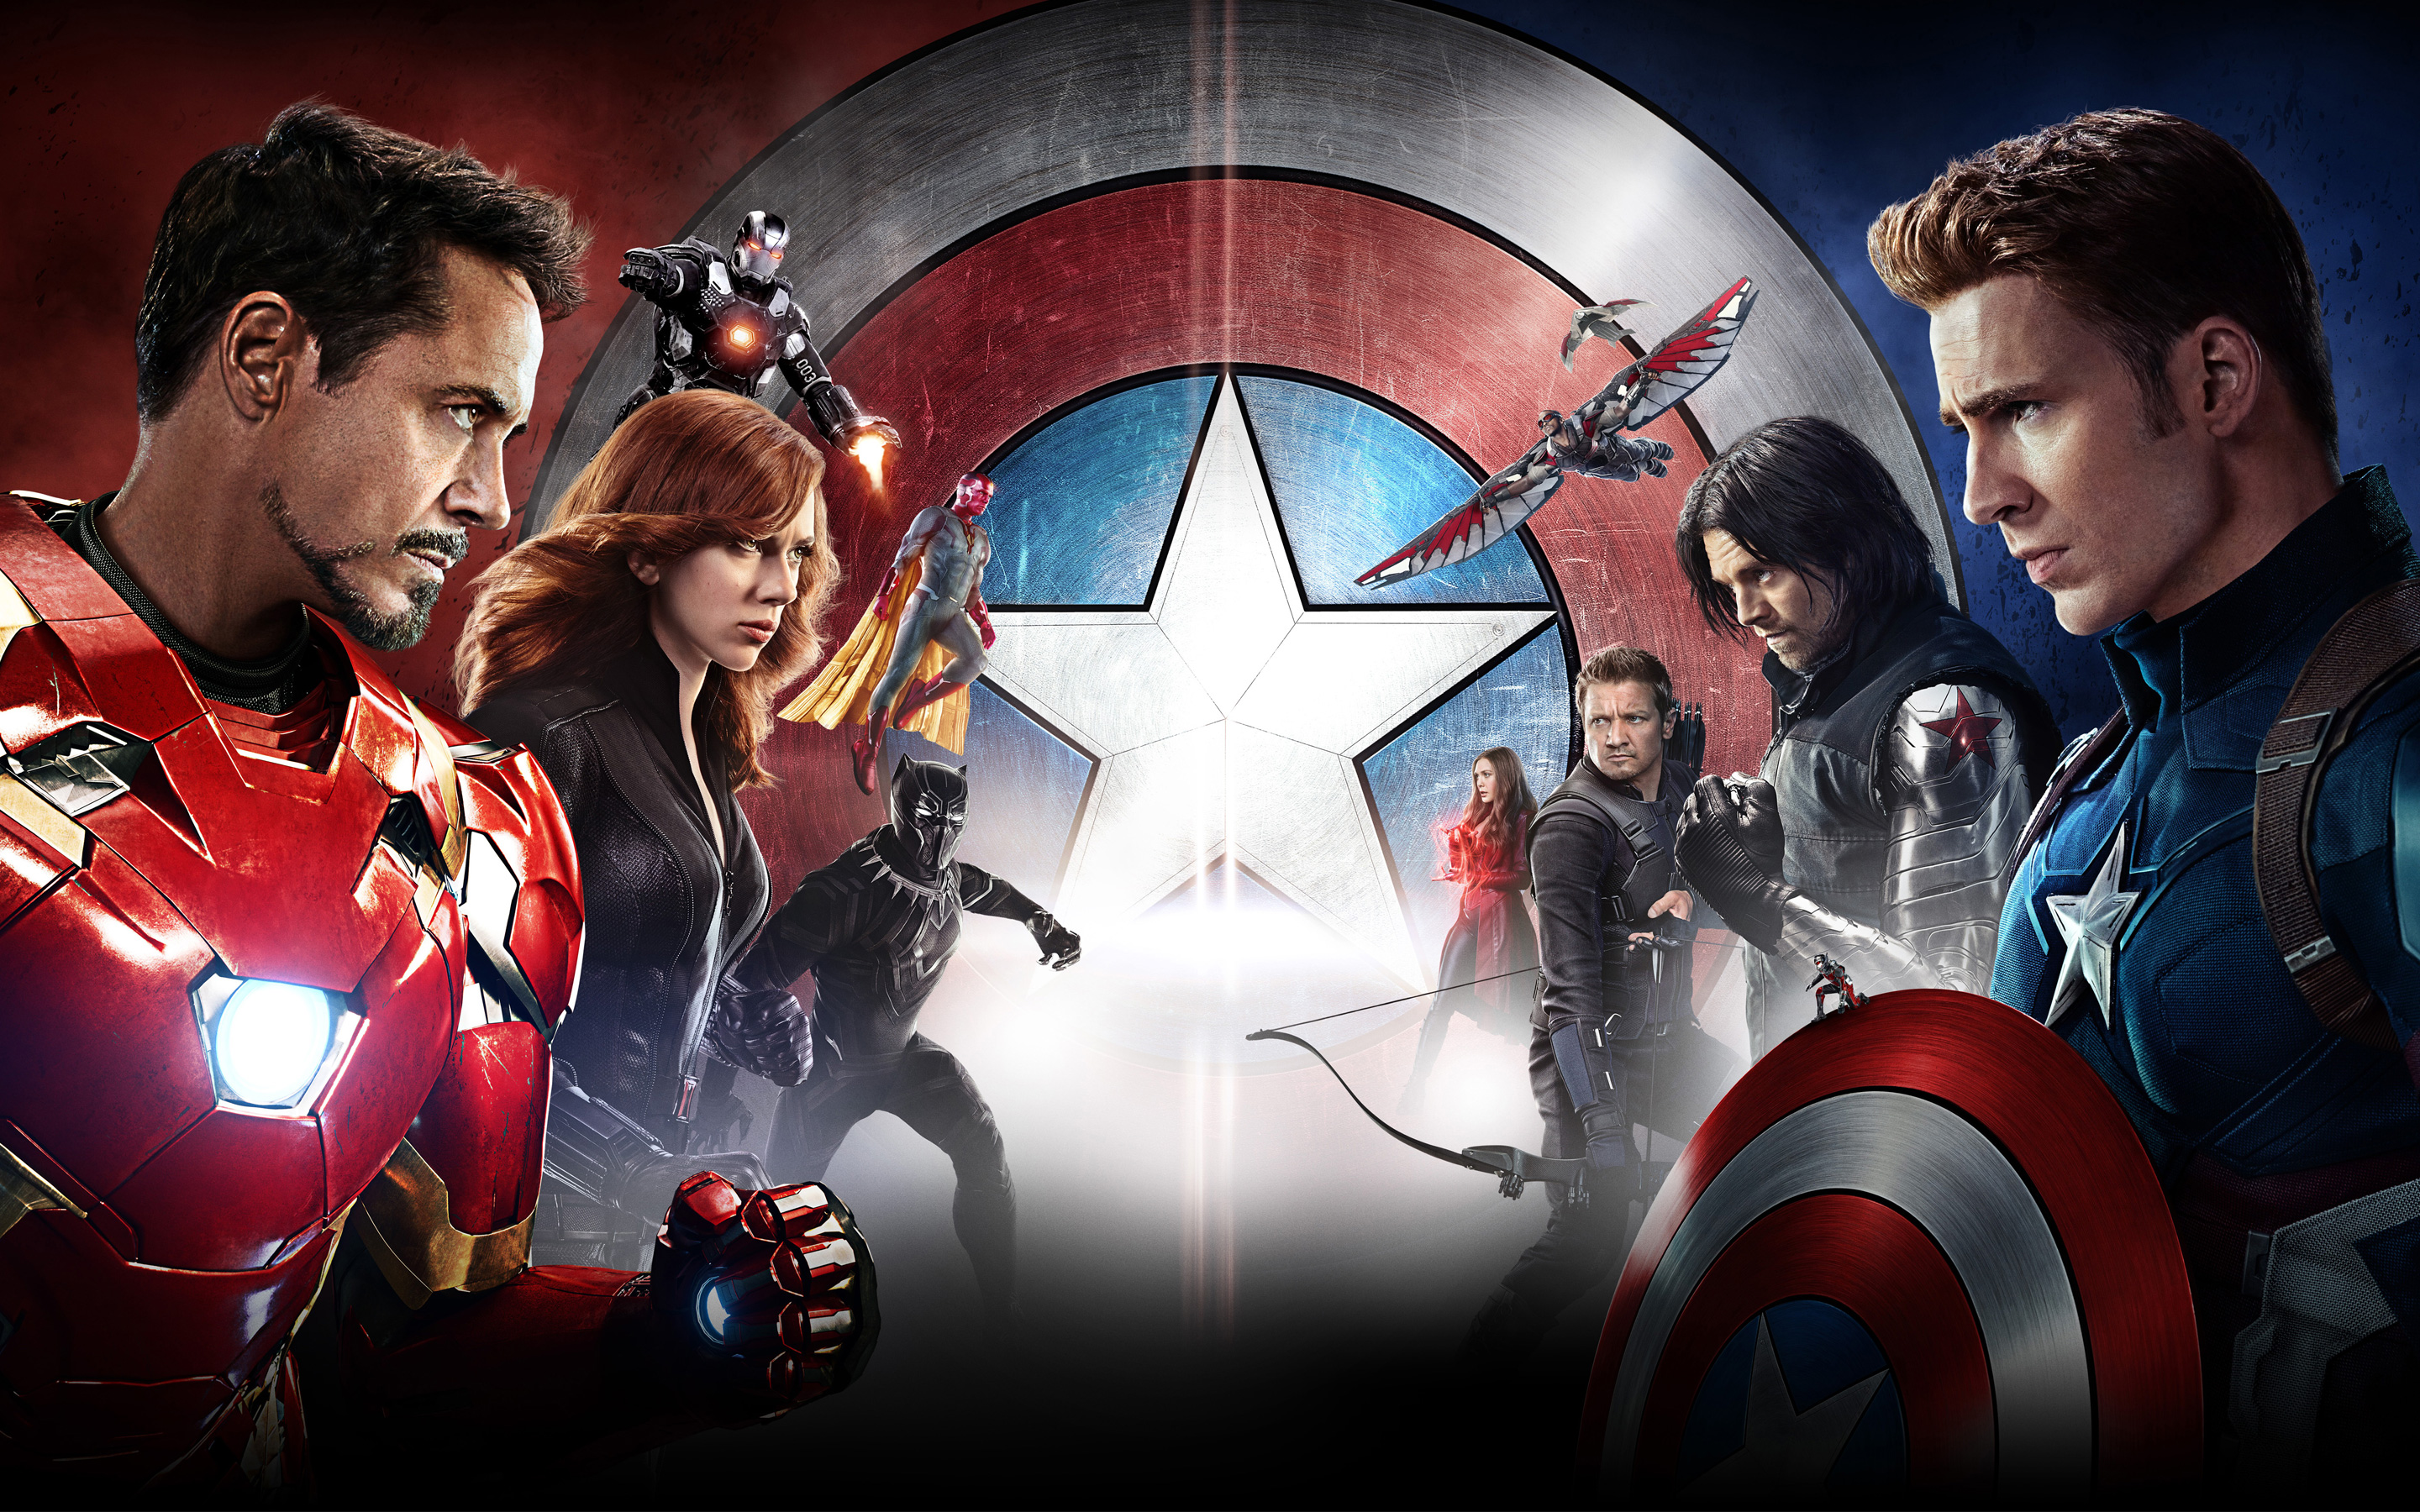 Thoughts on Captain America: Civil War